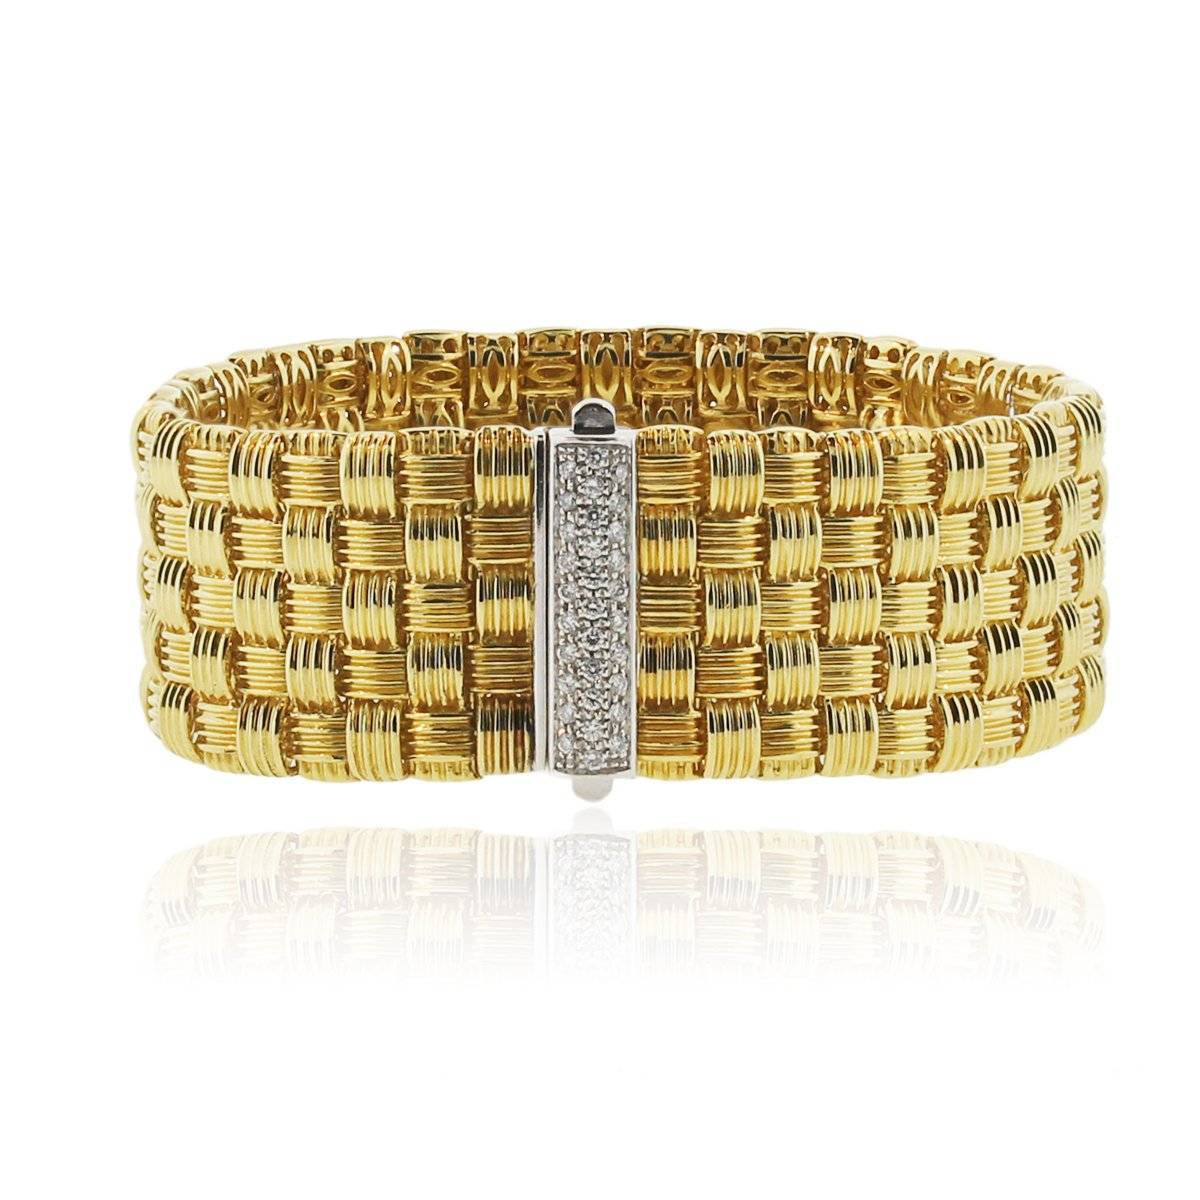 Roberto Coin Appassionata 18K Yellow Gold 5 Row Diamond Bracelet